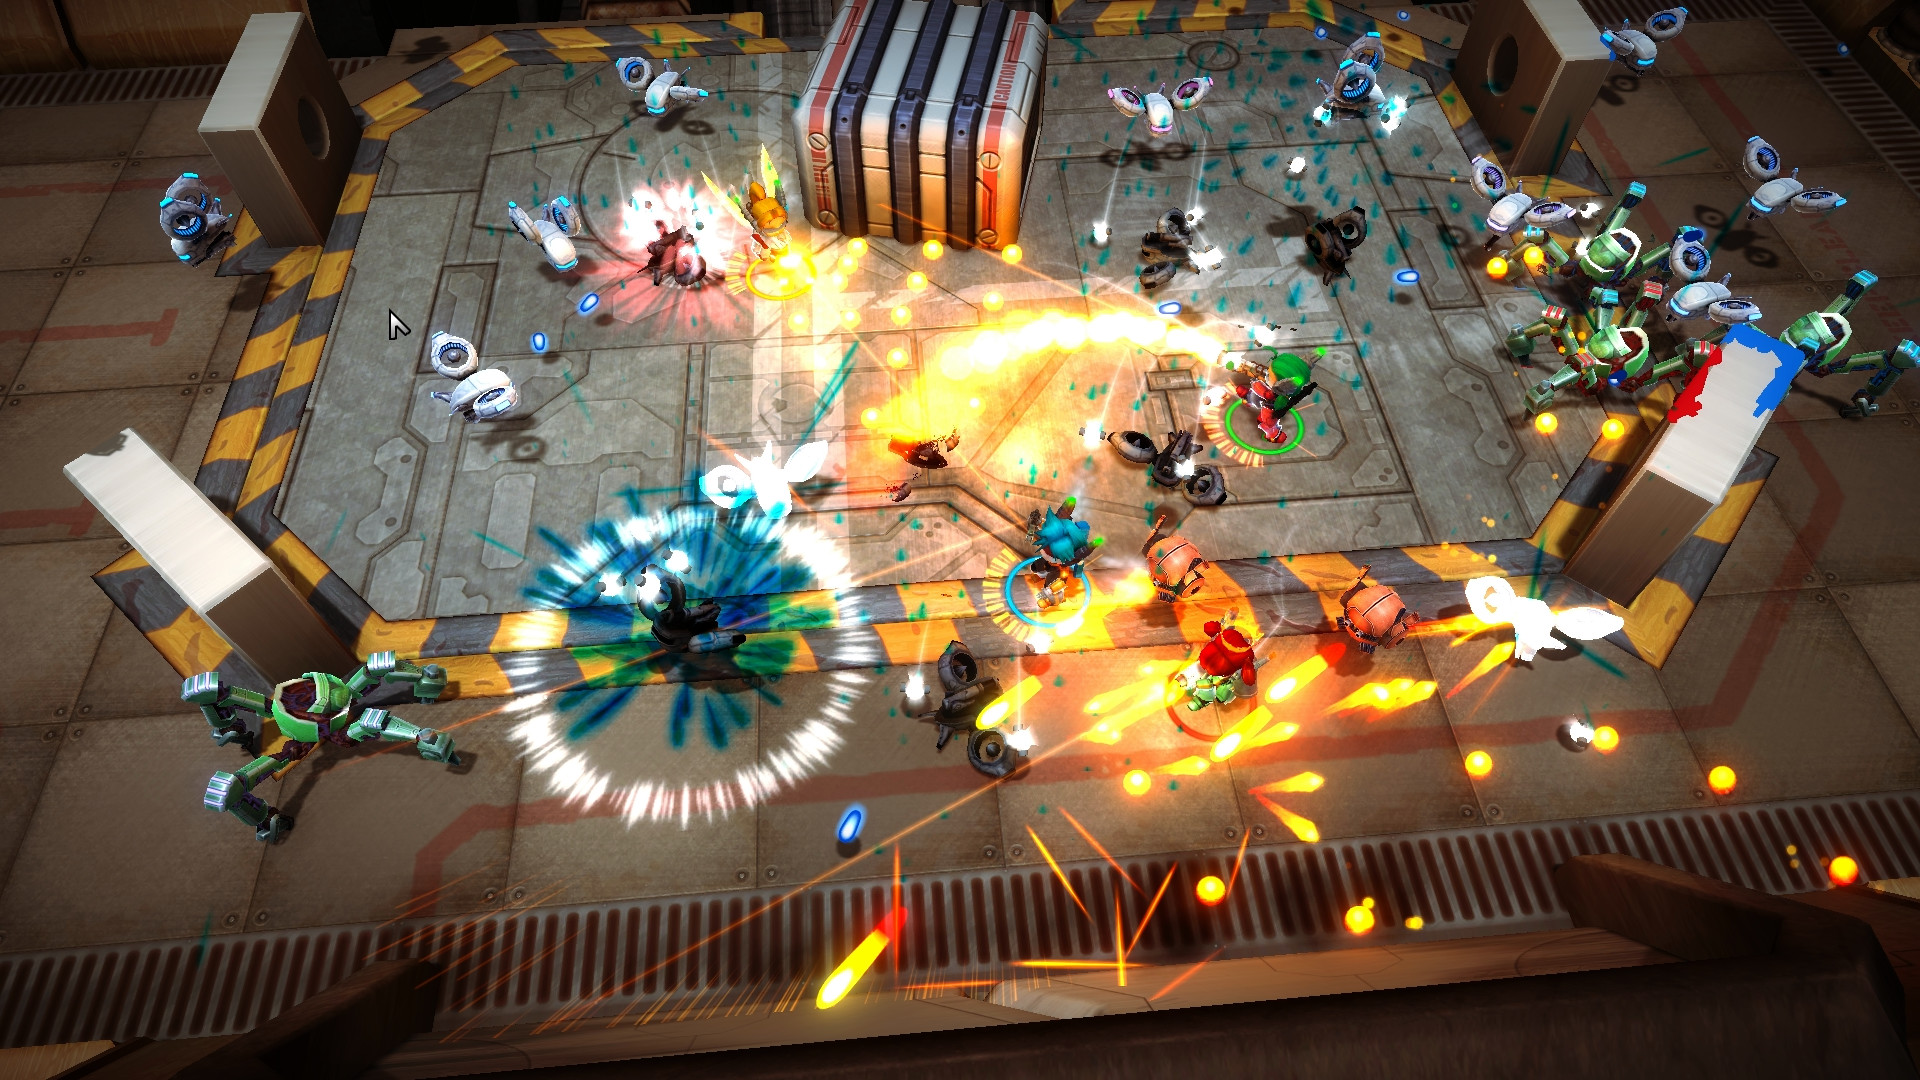 A screenshot from Assault Android Cactus. It is a busy factory-esque area with yellow and black safety stripes marking a square within it. Spider robots and glowing bullets, and explosions, abound.